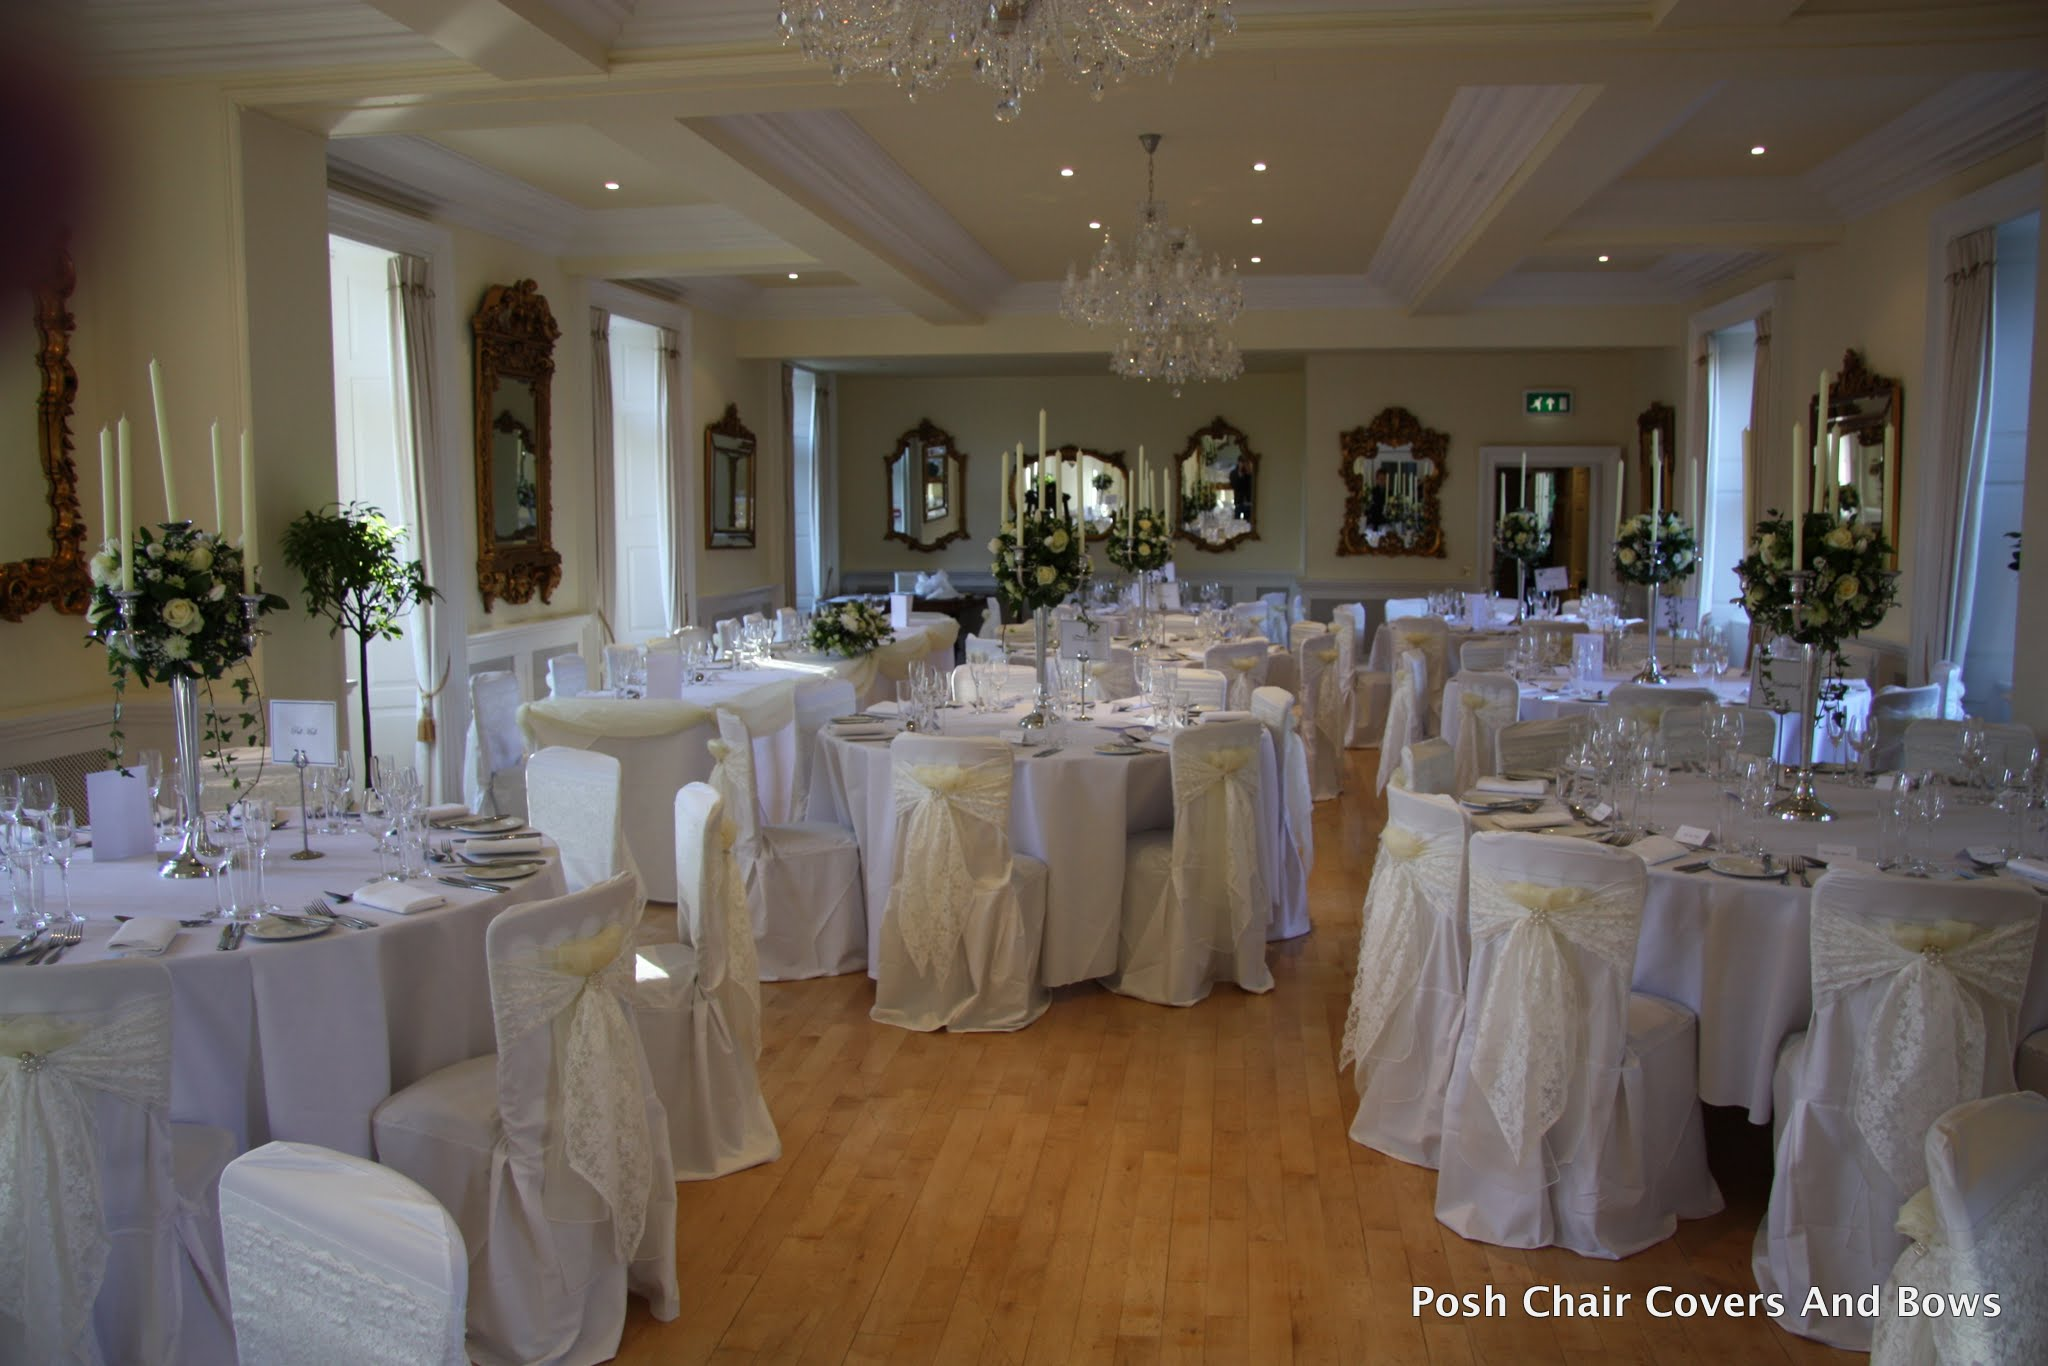 Posh Chair Covers  Bows  Flower Wall  Chiavari Chairs